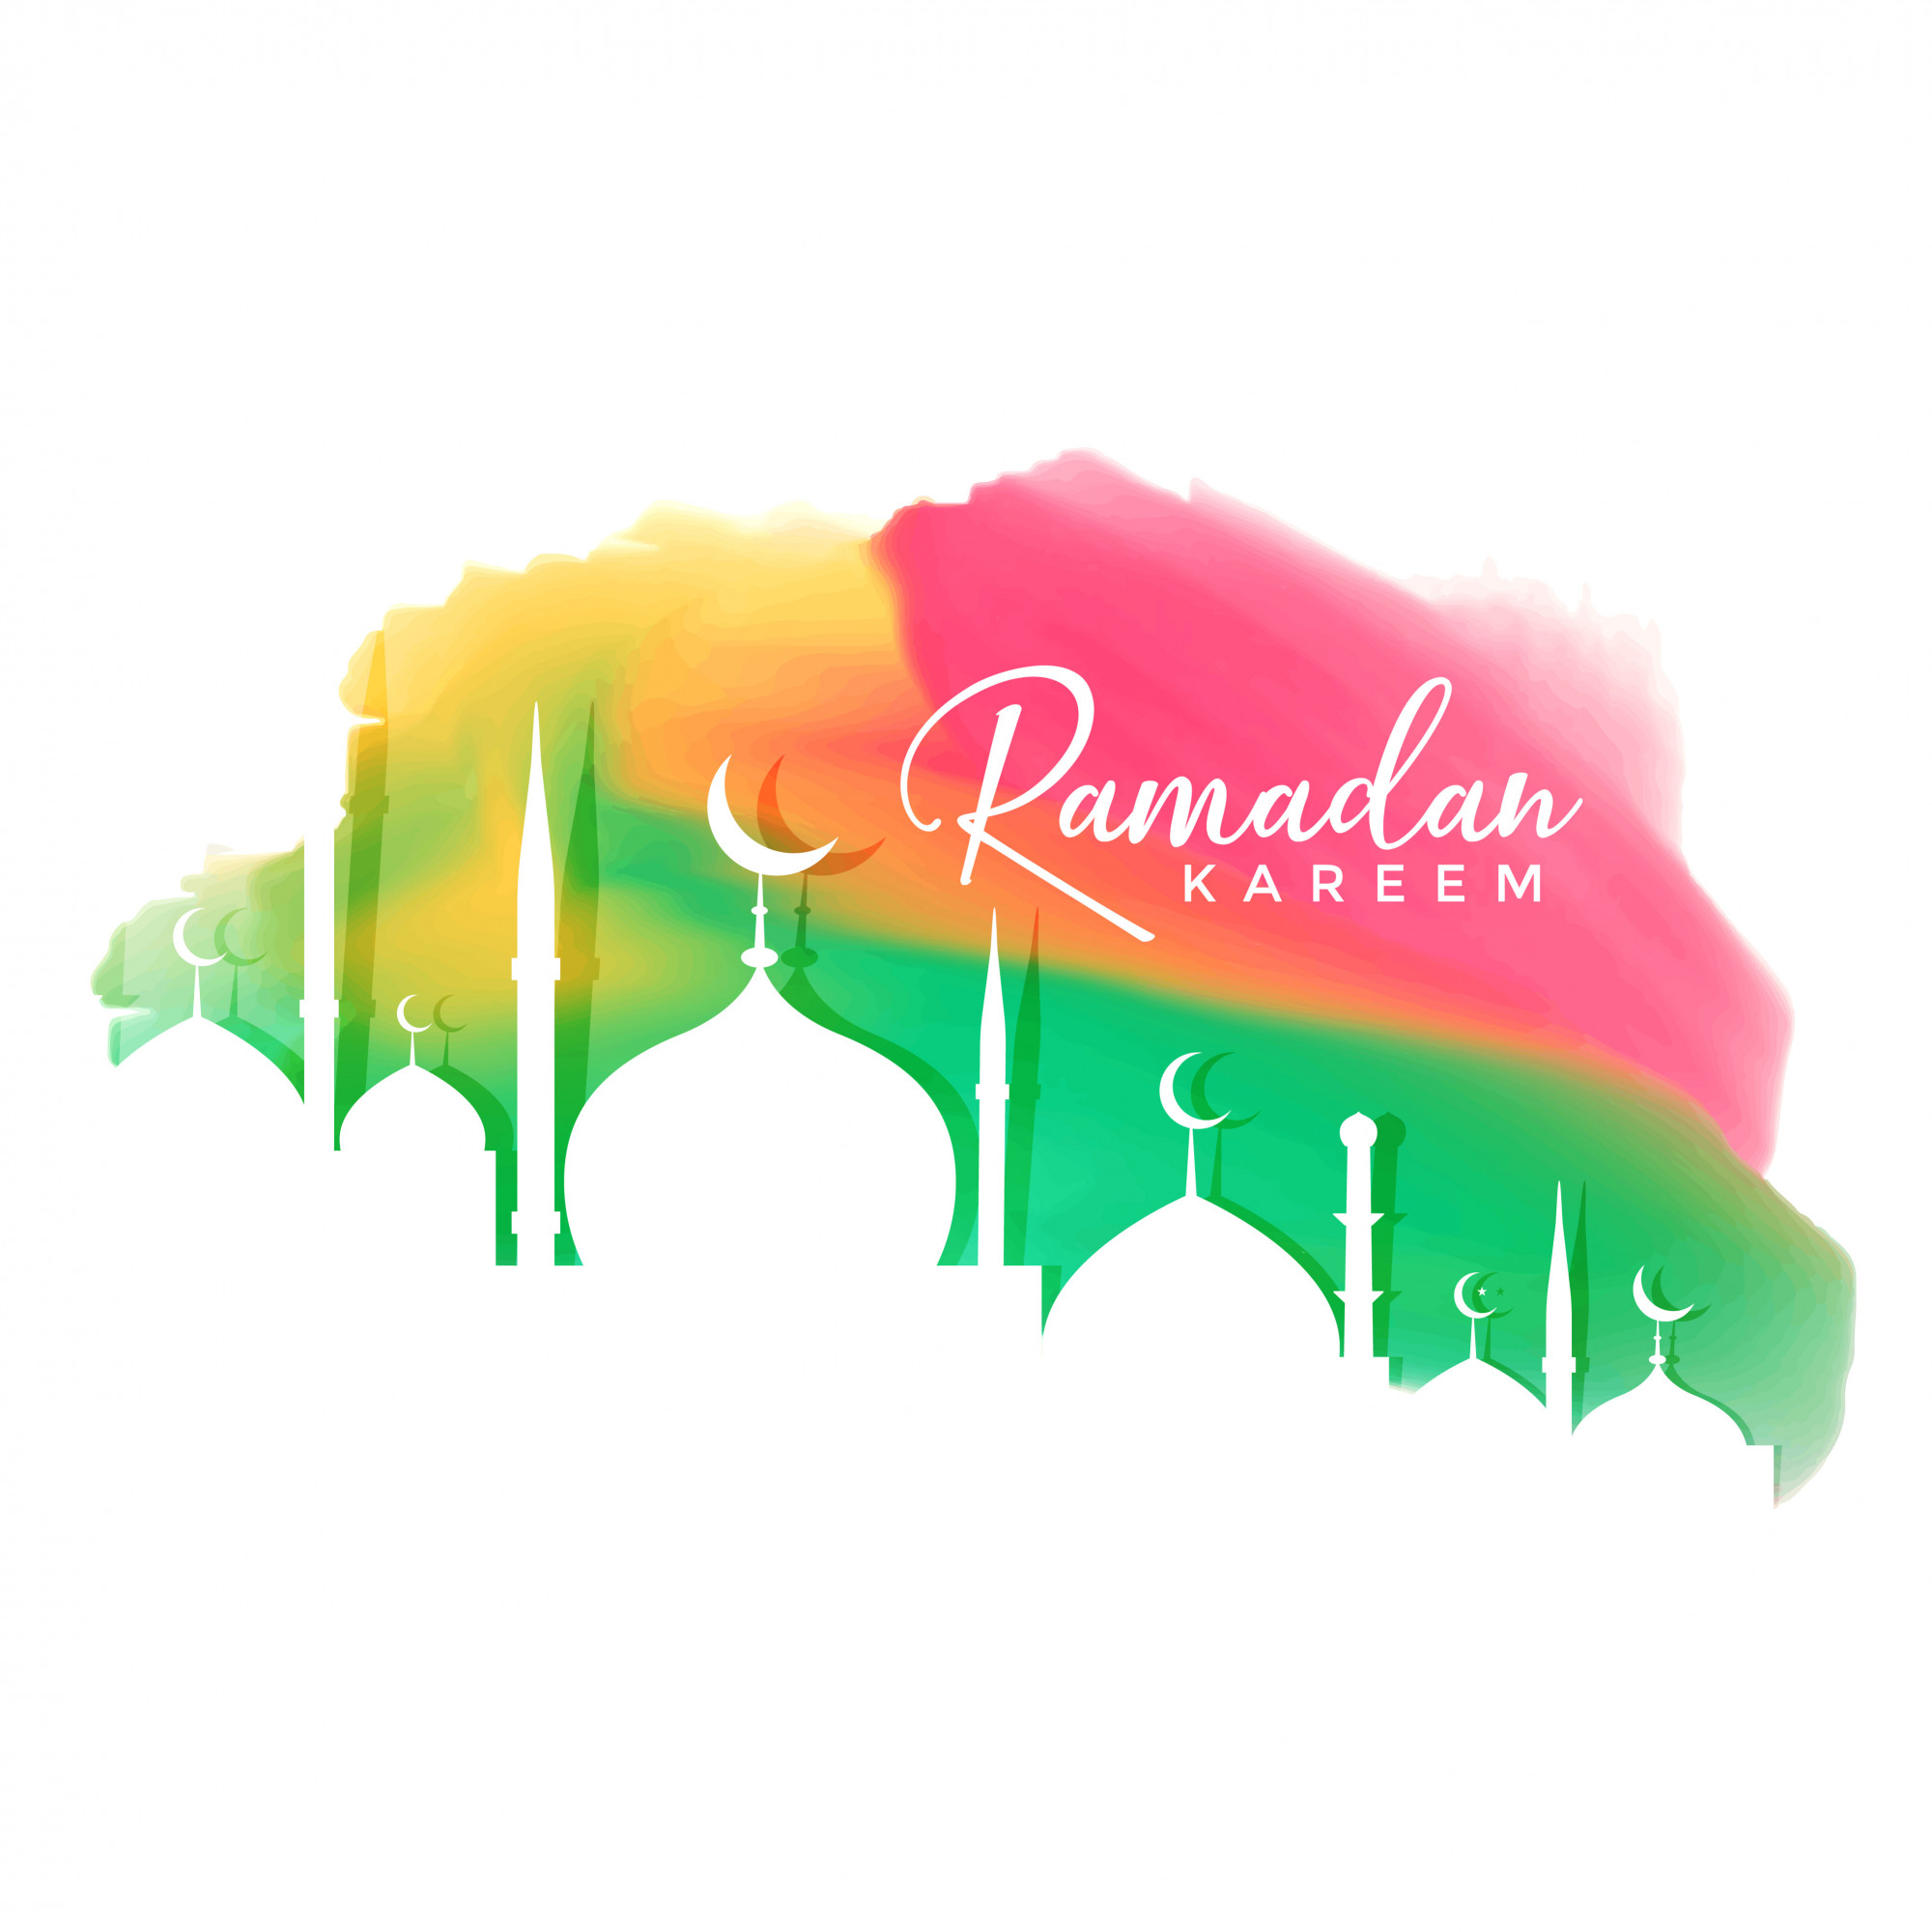 Colorful ramadan kareem festival design background